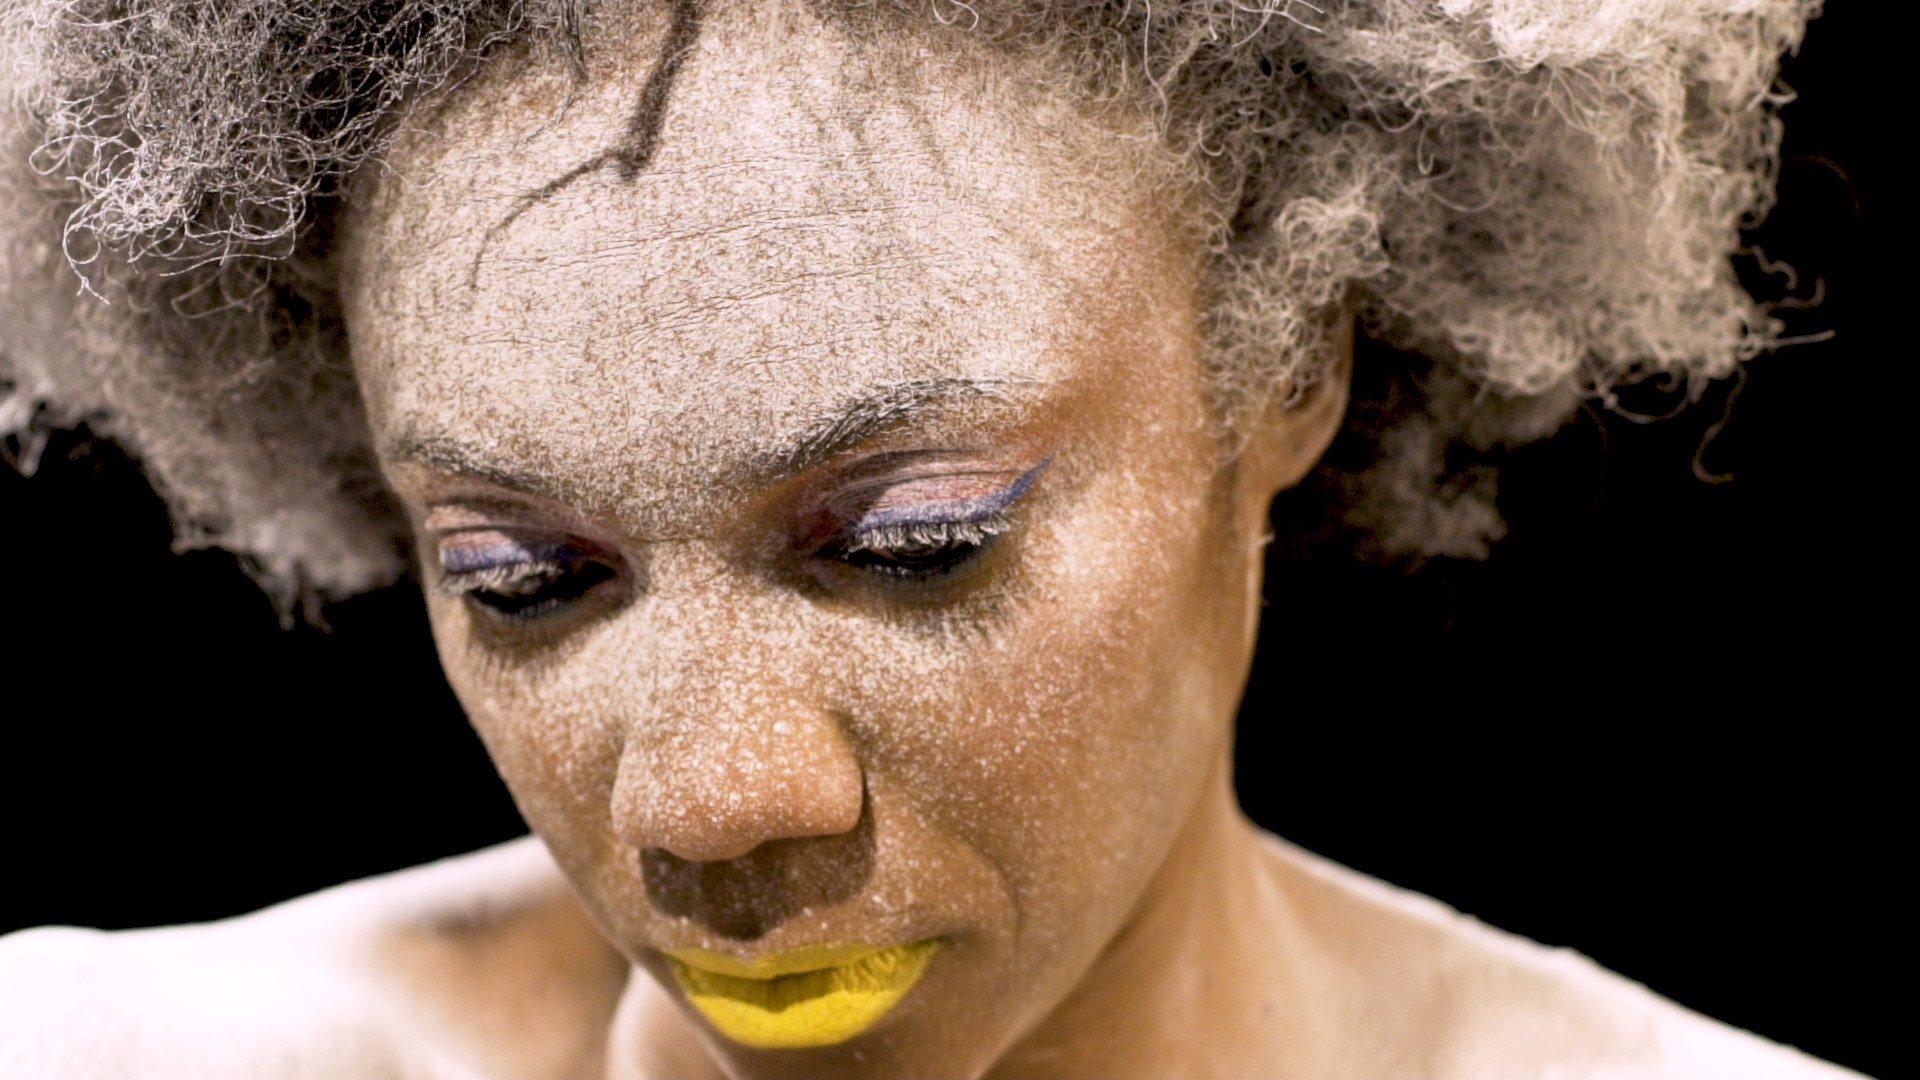 A woman with powder on her face and yellow-painted lips looks down mournfully.